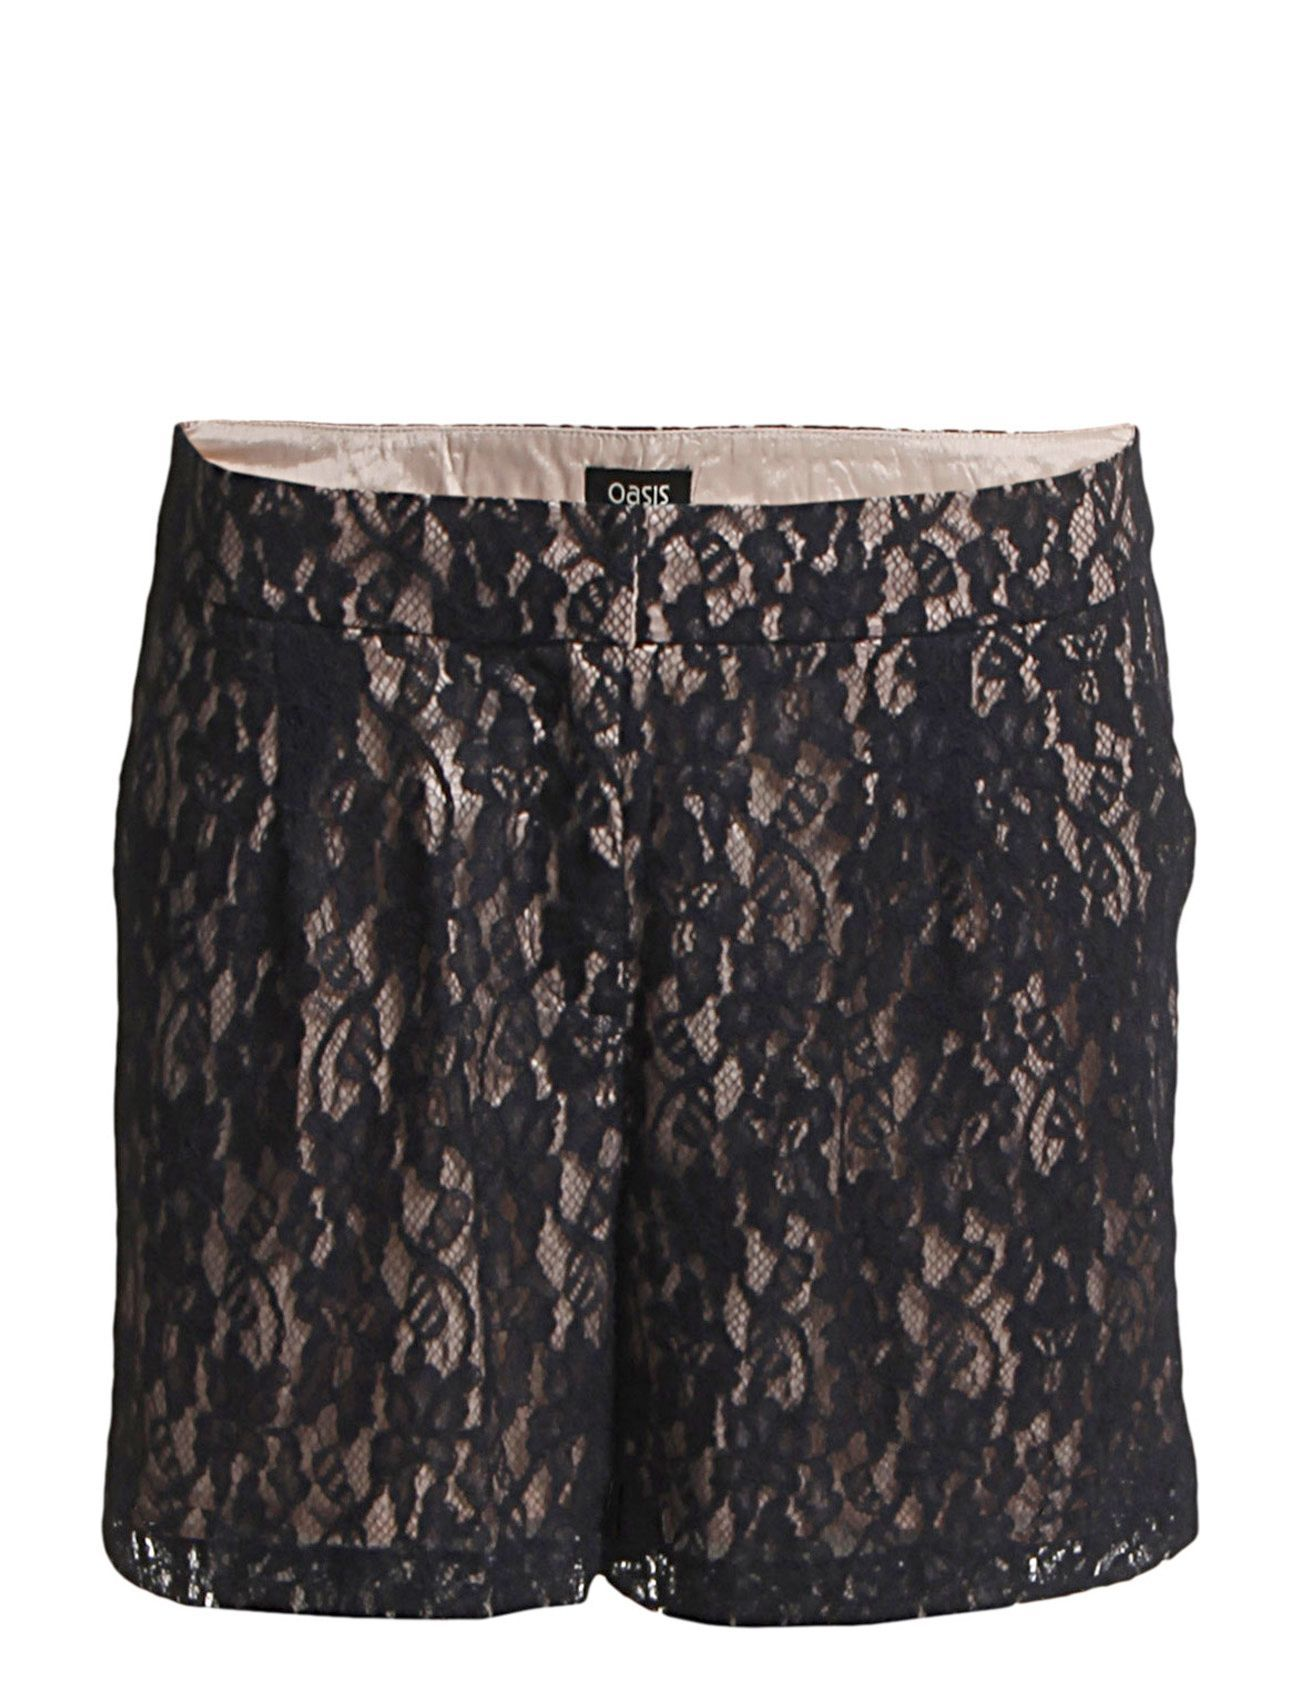 Oasis Lace Shorts